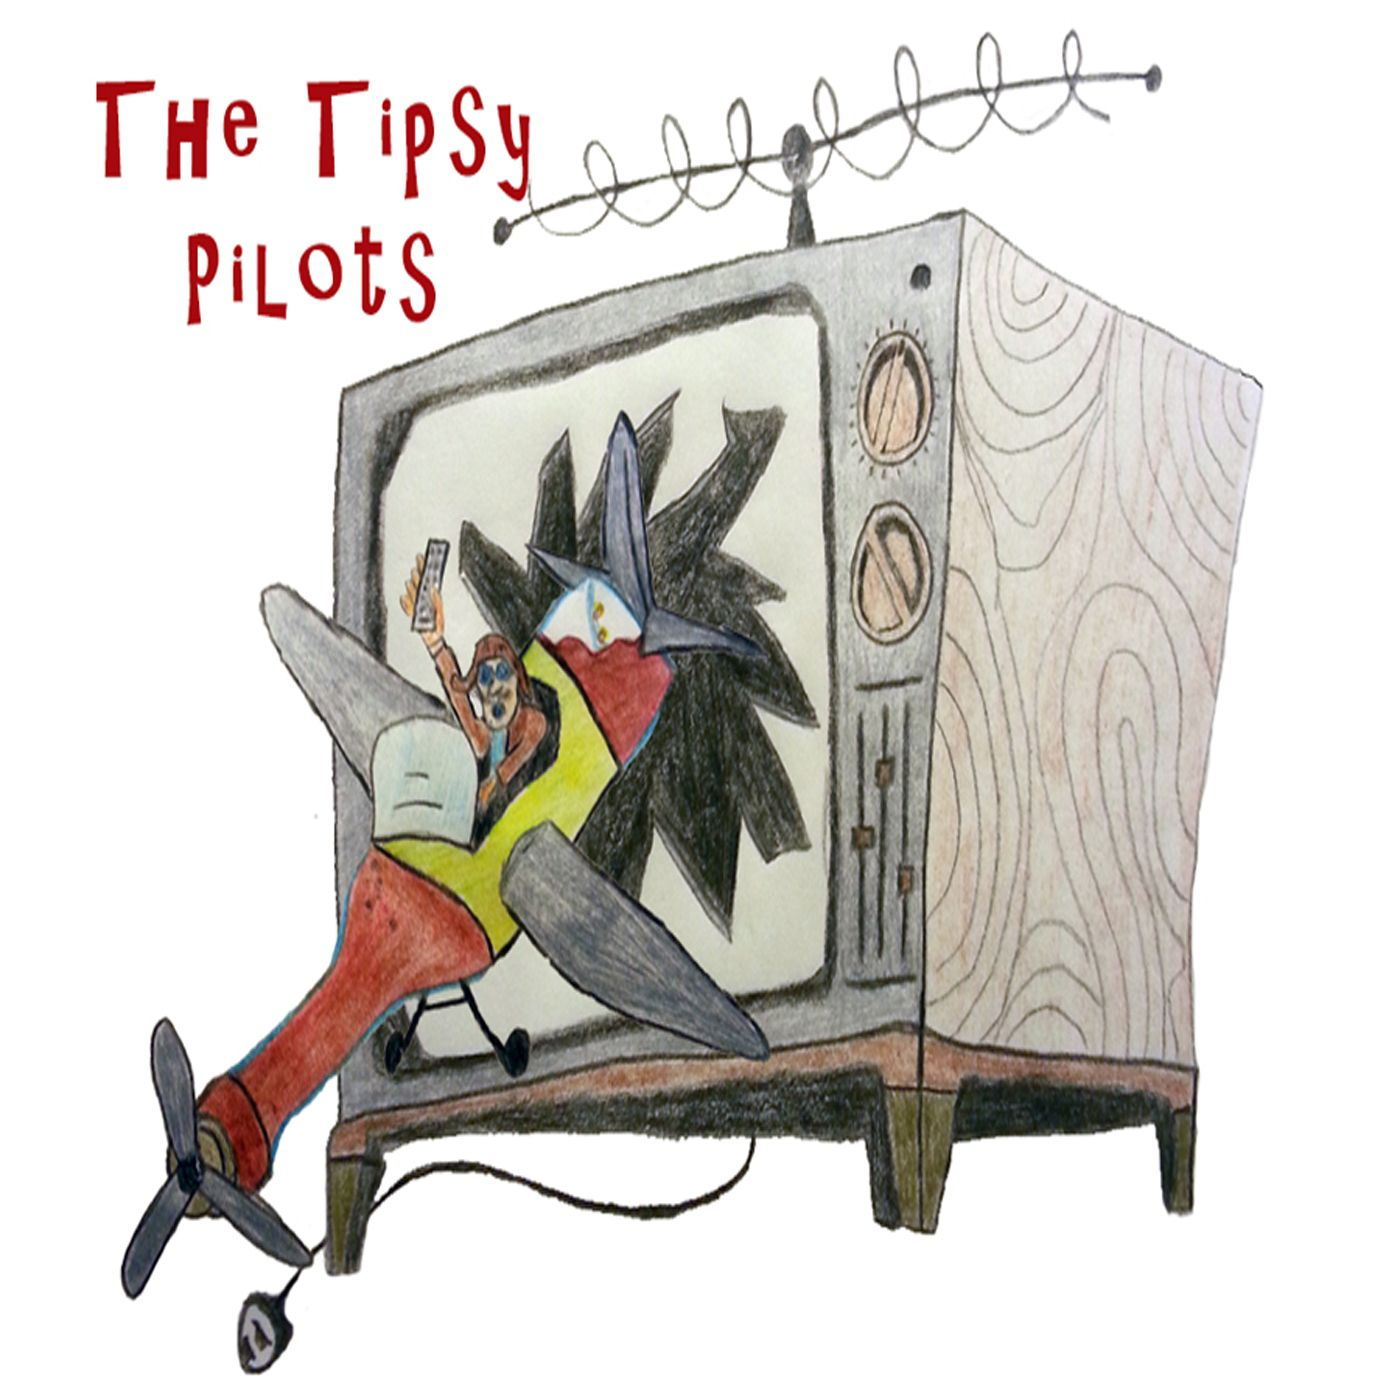 The Tipsy Pilots